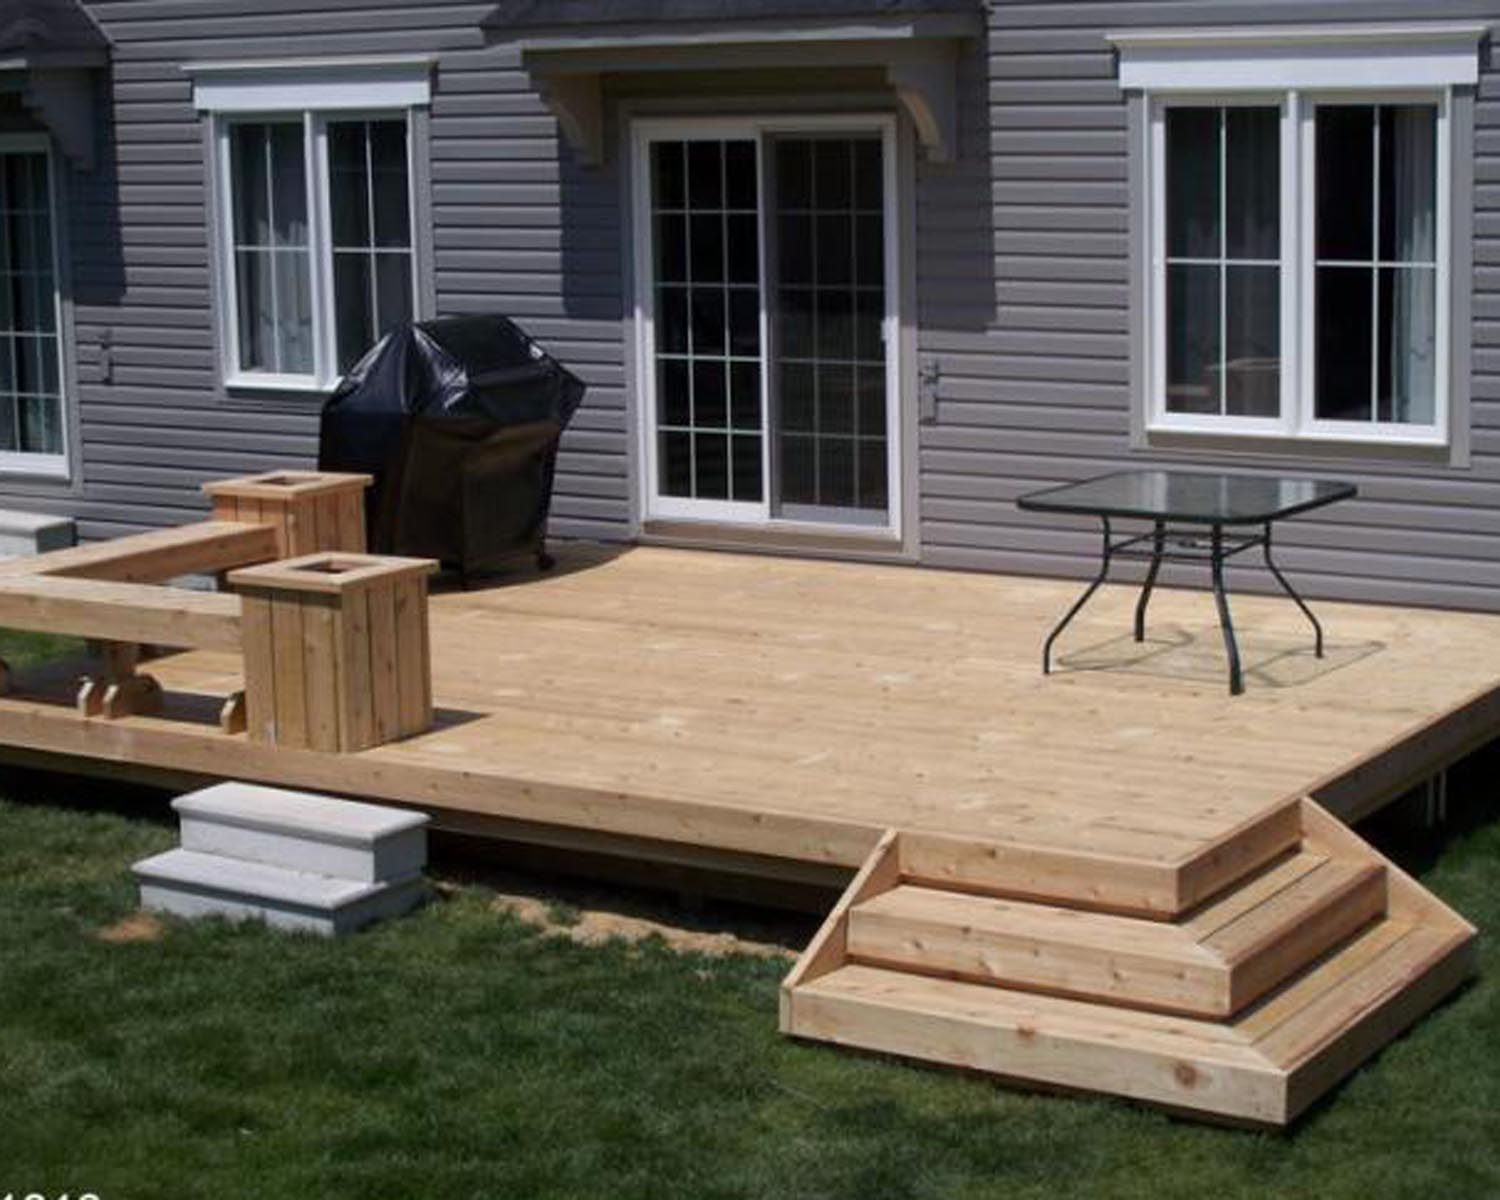 Deck Ideas | ... Be More When Deck Building Simple But Functional Designs  Can